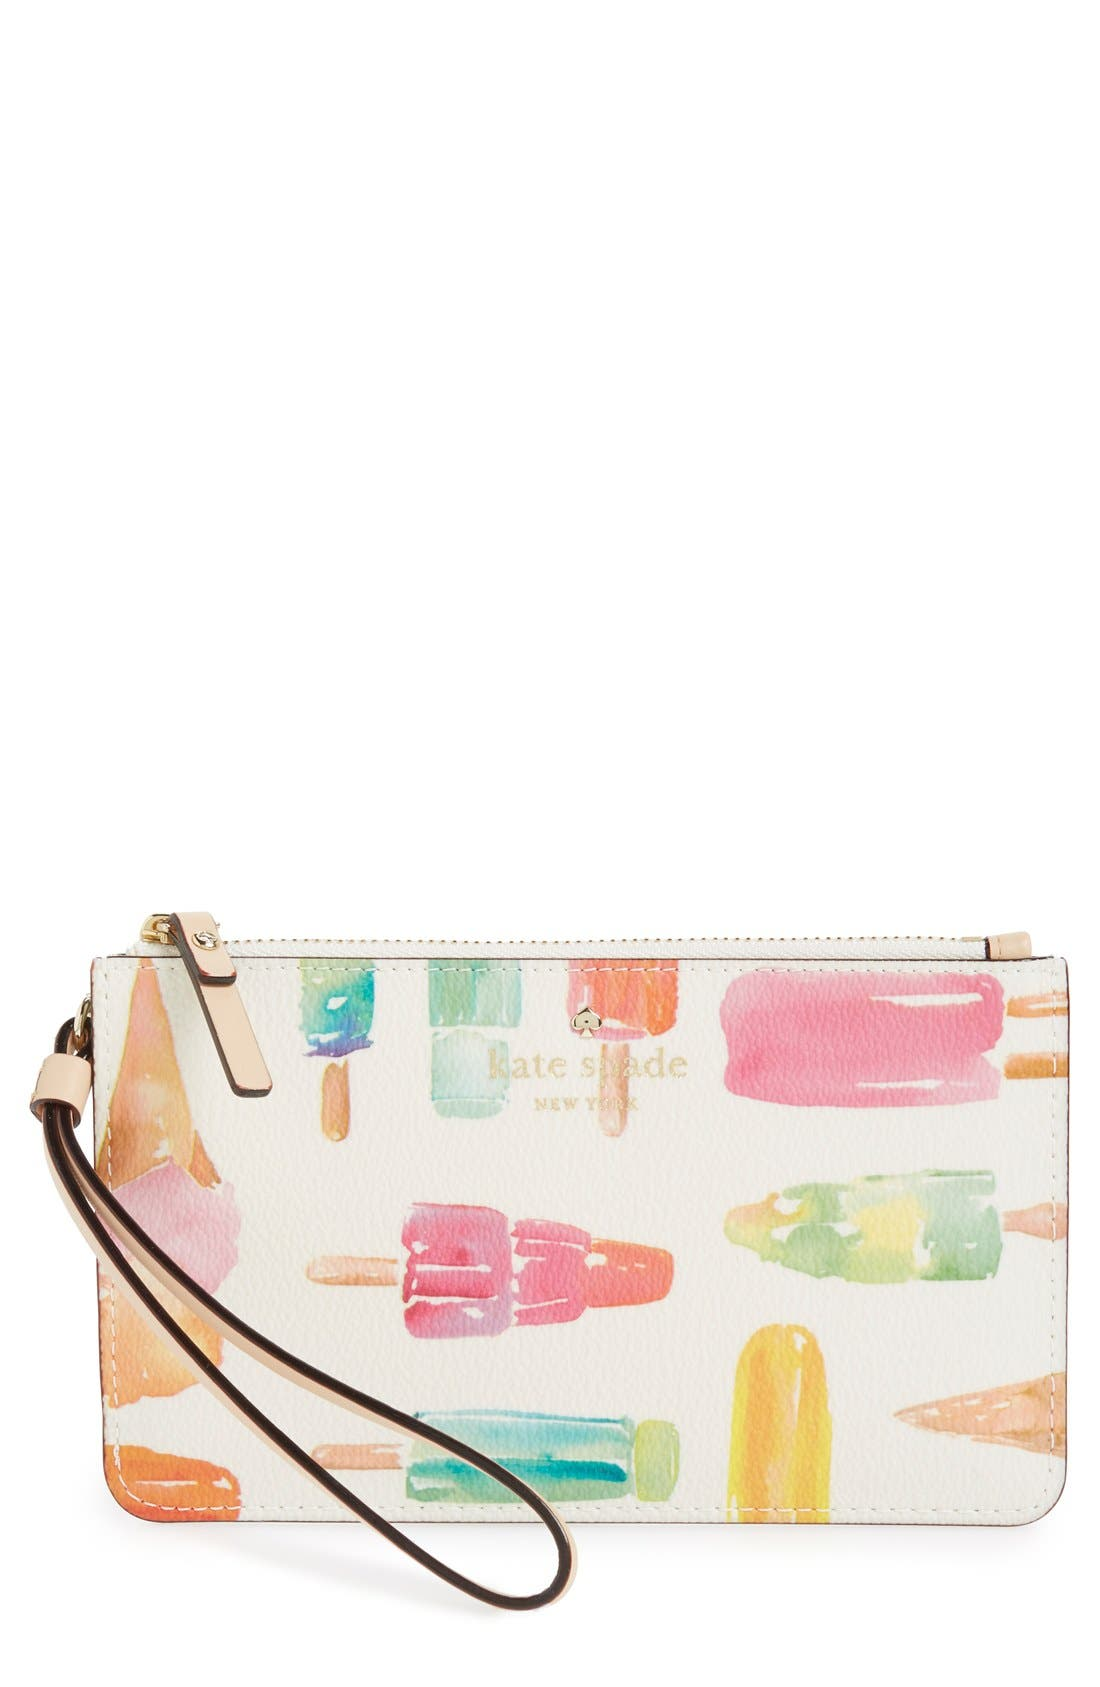 Alternate Image 1 Selected - kate spade new york 'cedar street - slim bee' ice pop print wristlet